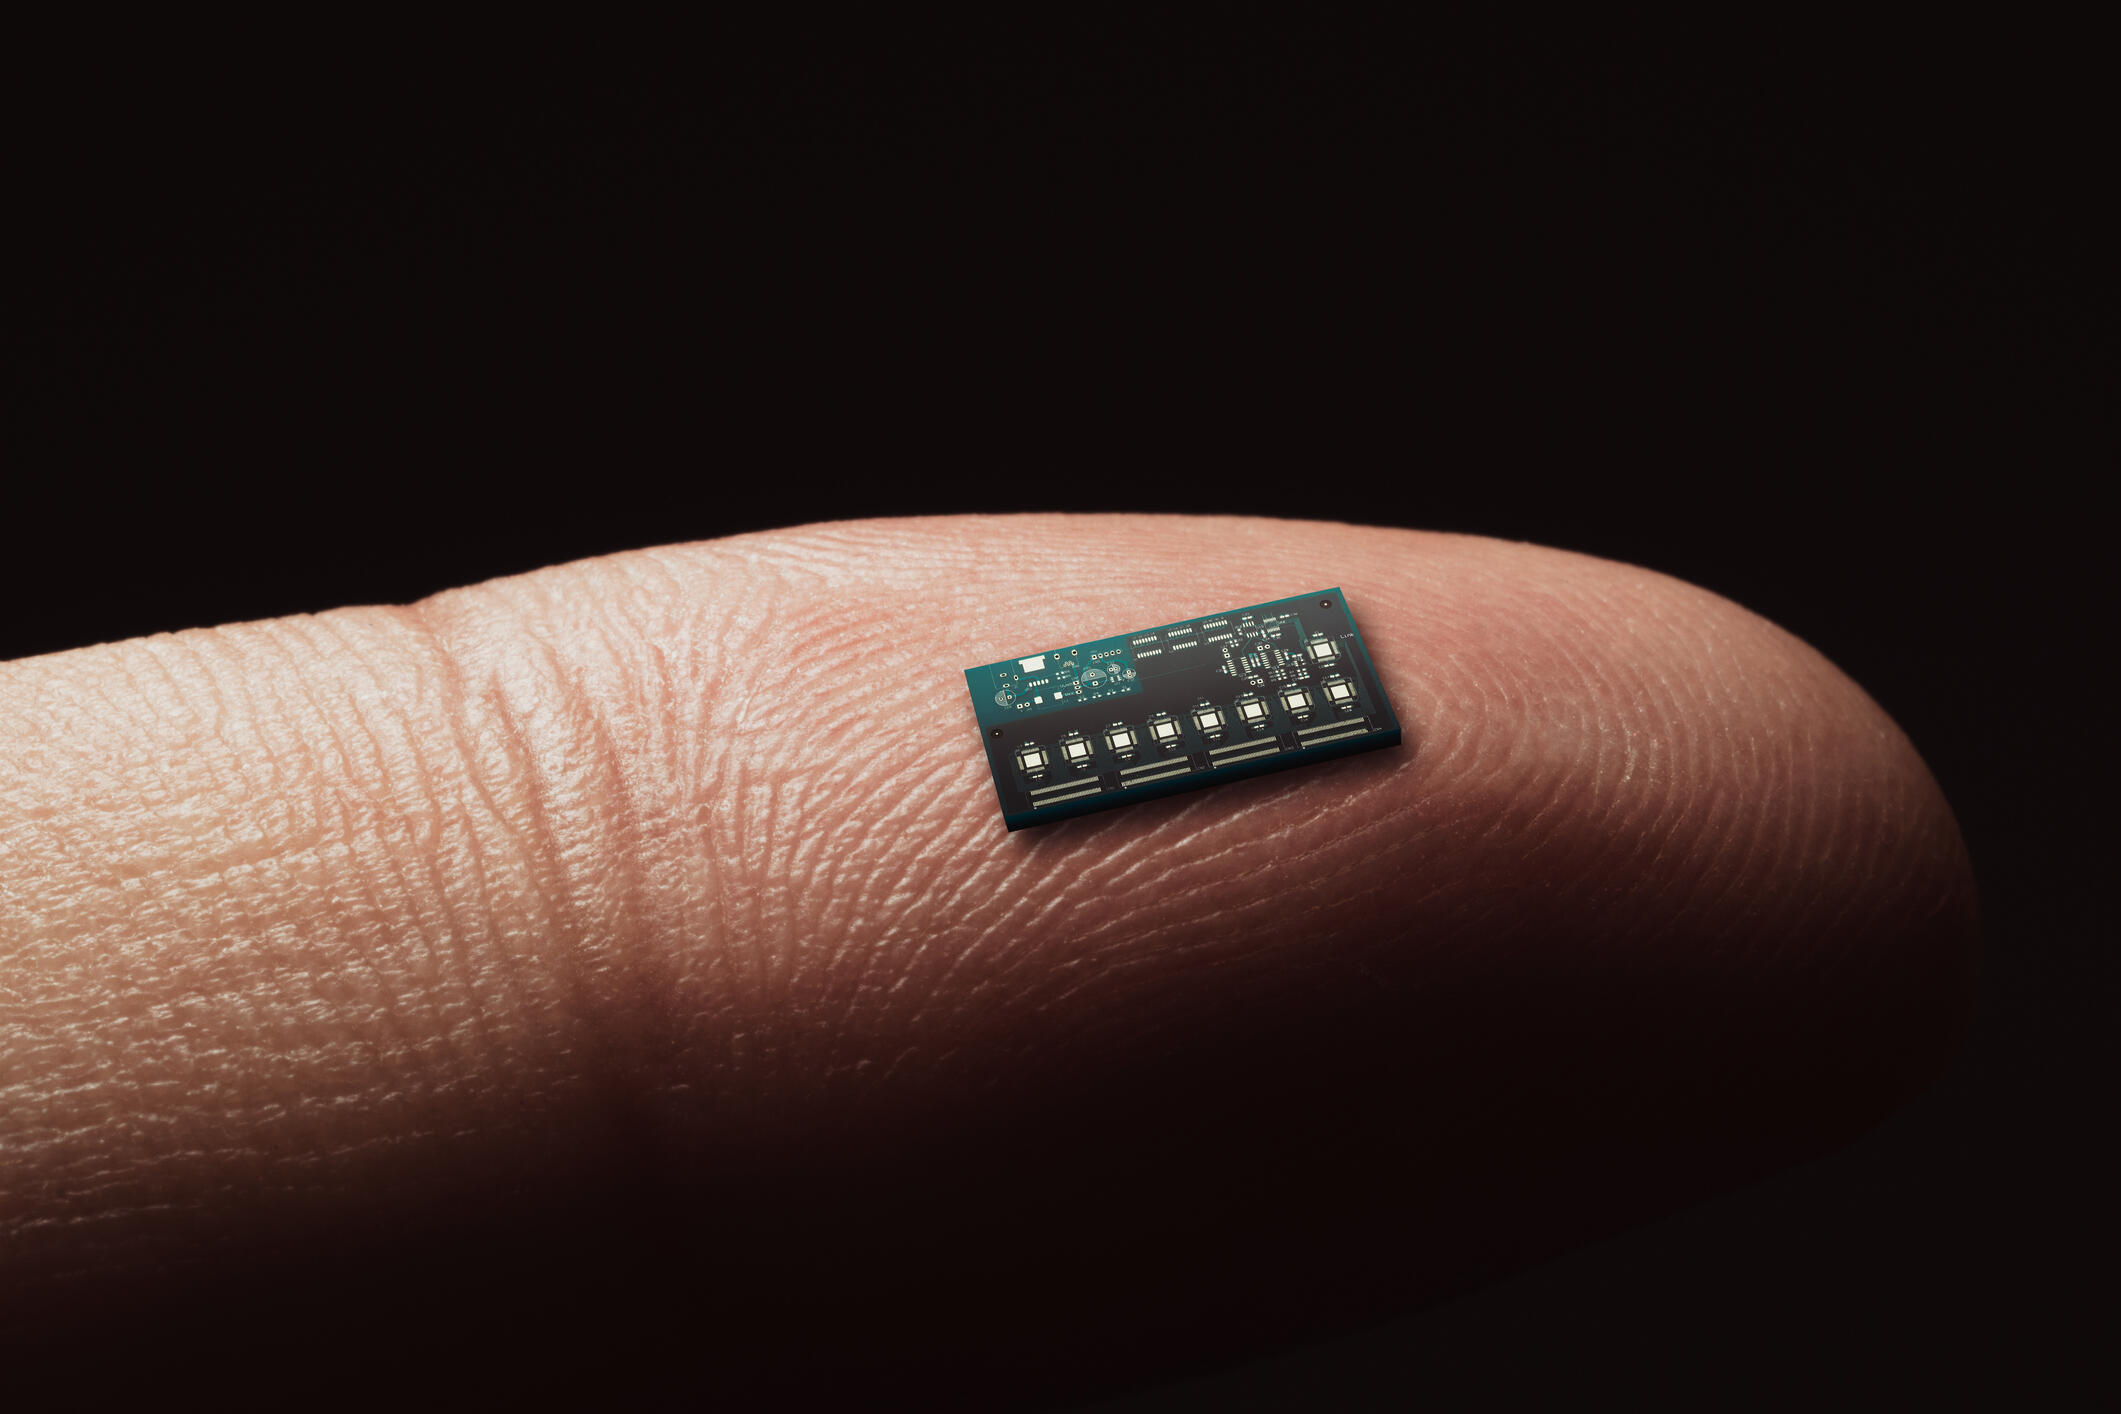 Would You Get A Chip Implanted If It Made Your Life Easier?